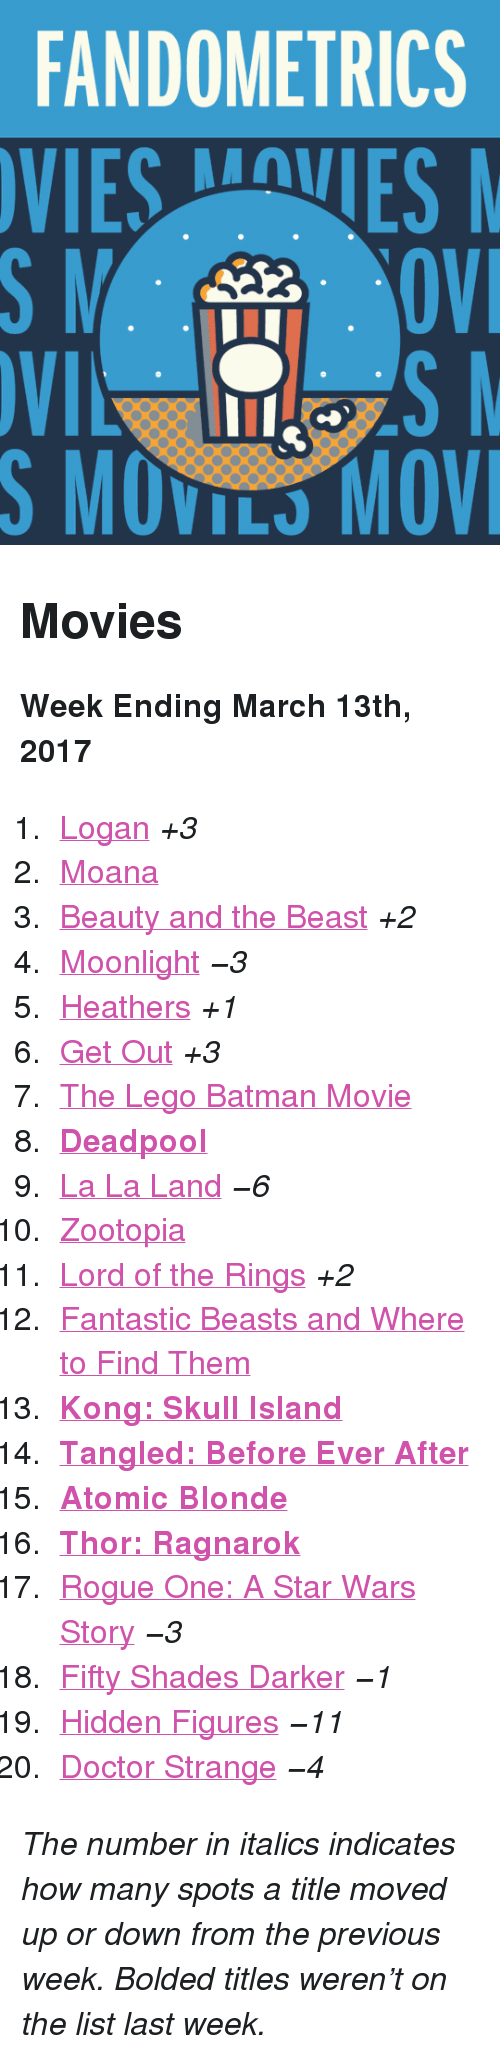 "Batman, Doctor, and Lego: FANDOMETRICS  VIESVES  S MOVILS MOV <h2>Movies</h2><p><b>Week Ending March 13th, 2017</b></p><ol><li><a href=""http://www.tumblr.com/search/logan"">Logan</a> <i>+3</i></li>  <li><a href=""http://www.tumblr.com/search/moana"">Moana</a> </li>  <li><a href=""http://www.tumblr.com/search/beauty%20and%20the%20beast"">Beauty and the Beast</a> <i>+2</i></li>  <li><a href=""http://www.tumblr.com/search/moonlight"">Moonlight</a> <i>−3</i></li>  <li><a href=""http://www.tumblr.com/search/heathers"">Heathers</a> <i>+1</i></li>  <li><a href=""http://www.tumblr.com/search/get%20out"">Get Out</a> <i>+3</i></li>  <li><a href=""http://www.tumblr.com/search/lego%20batman"">The Lego Batman Movie</a> </li>  <li><b><a href=""http://www.tumblr.com/search/deadpool"">Deadpool</a> </b></li>  <li><a href=""http://www.tumblr.com/search/la%20la%20land"">La La Land</a> <i><i>−6</i></i></li>  <li><a href=""http://www.tumblr.com/search/zootopia"">Zootopia</a> </li>  <li><a href=""http://www.tumblr.com/search/lotr"">Lord of the Rings</a> <i>+2</i></li>  <li><a href=""http://www.tumblr.com/search/fantastic%20beasts%20and%20where%20to%20find%20them"">Fantastic Beasts and Where to Find Them</a> </li>  <li><a href=""http://www.tumblr.com/search/kong%20skull%20island""><b>Kong: Skull Island</b></a></li>  <li><a href=""http://www.tumblr.com/search/tangled%20before%20ever%20after""><b>Tangled: Before Ever After</b></a></li>  <li><a href=""http://www.tumblr.com/search/atomic%20blonde""><b>Atomic Blonde</b></a></li>  <li><b><a href=""http://www.tumblr.com/search/thor%20ragnarok"">Thor: Ragnarok</a> </b></li>  <li><a href=""http://www.tumblr.com/search/rogue%20one"">Rogue One: A Star Wars Story</a> <i>−3</i></li>  <li><a href=""http://www.tumblr.com/search/fifty%20shades%20darker"">Fifty Shades Darker</a> <i>−1</i></li>  <li><a href=""http://www.tumblr.com/search/hidden%20figures"">Hidden Figures</a> <i>−11</i></li>  <li><a href=""http://www.tumblr.com/search/doctor%20strange"">Doctor Strange</a> <i>−4</i></li></ol><p><i>The number in italics indicates how many spots a title moved up or down from the previous week. Bolded titles weren't on the list last week.</i></p>"